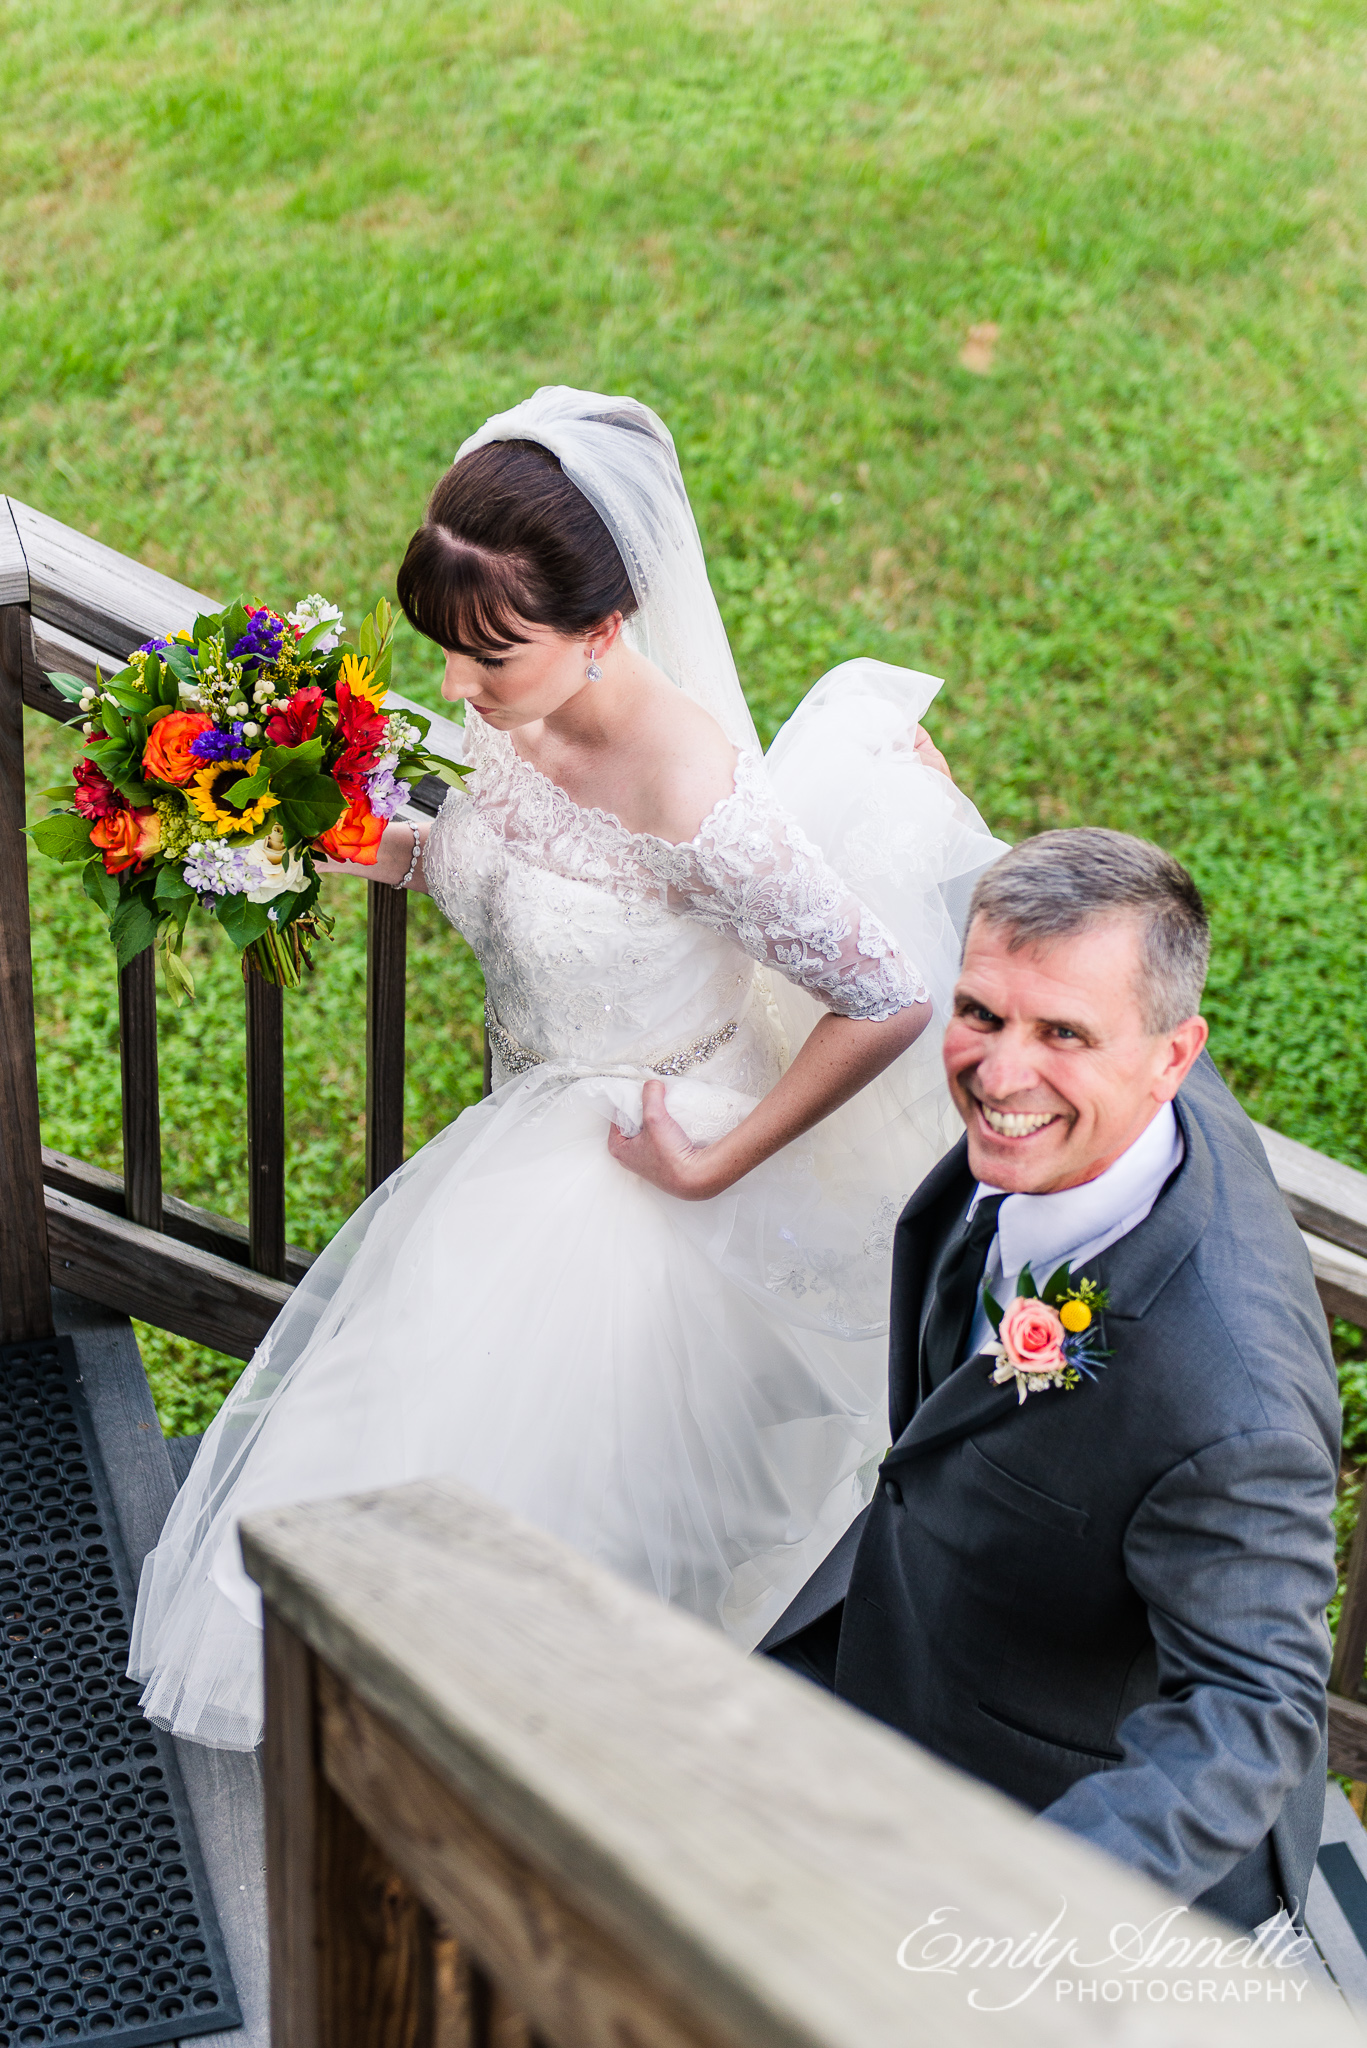 A bride and the father of the bride walk into the ceremony site together during a country wedding at Amber Grove near Richmond, Virginia